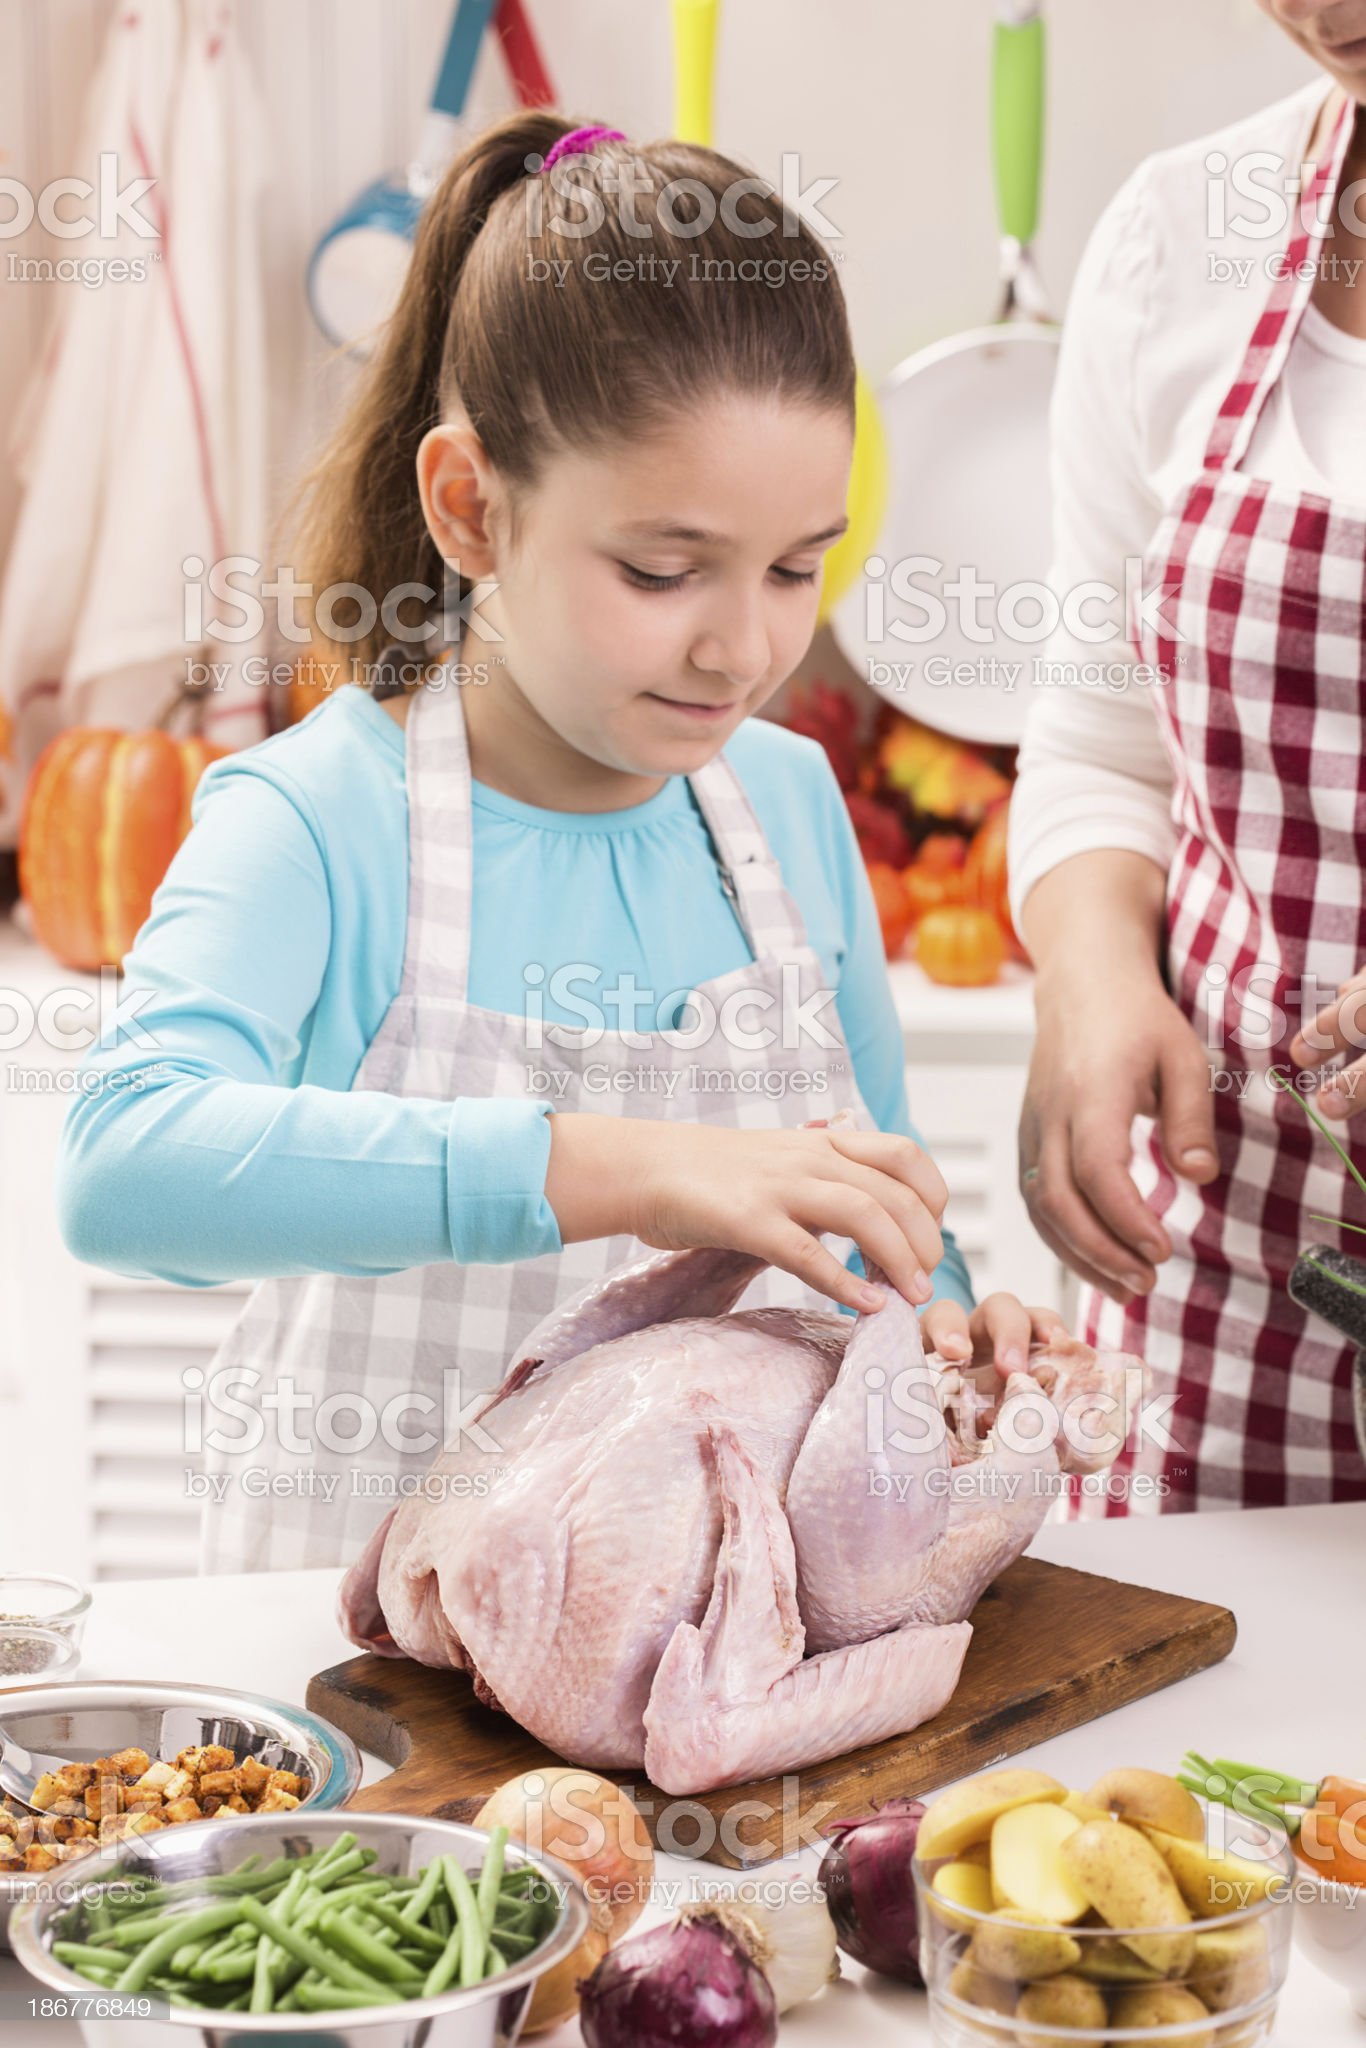 Preparing Thanksgiving Turkey for Holidays royalty-free stock photo